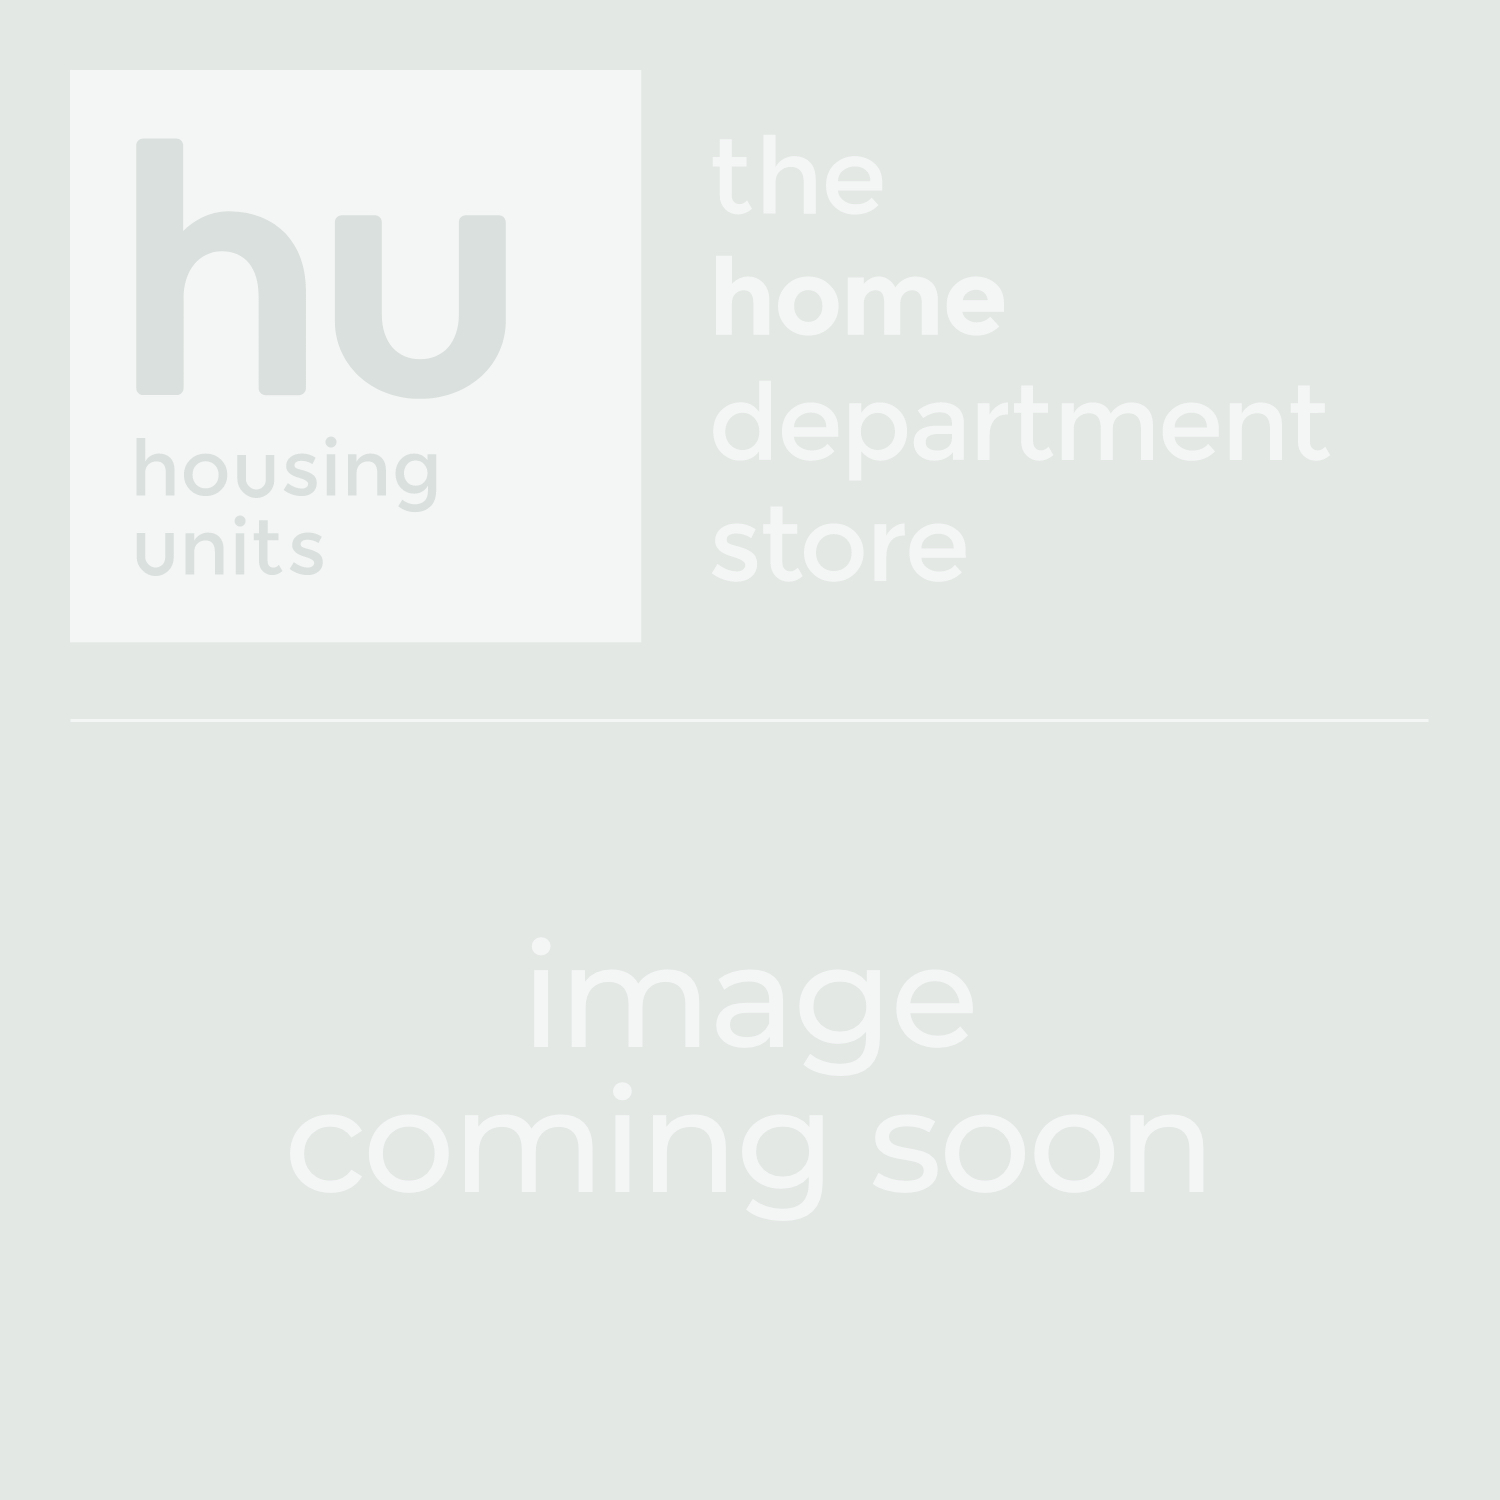 Celsi Ultiflame VR Orbital Illumia Smooth White Electric Fire Suite - Lifestyle | Housing Units